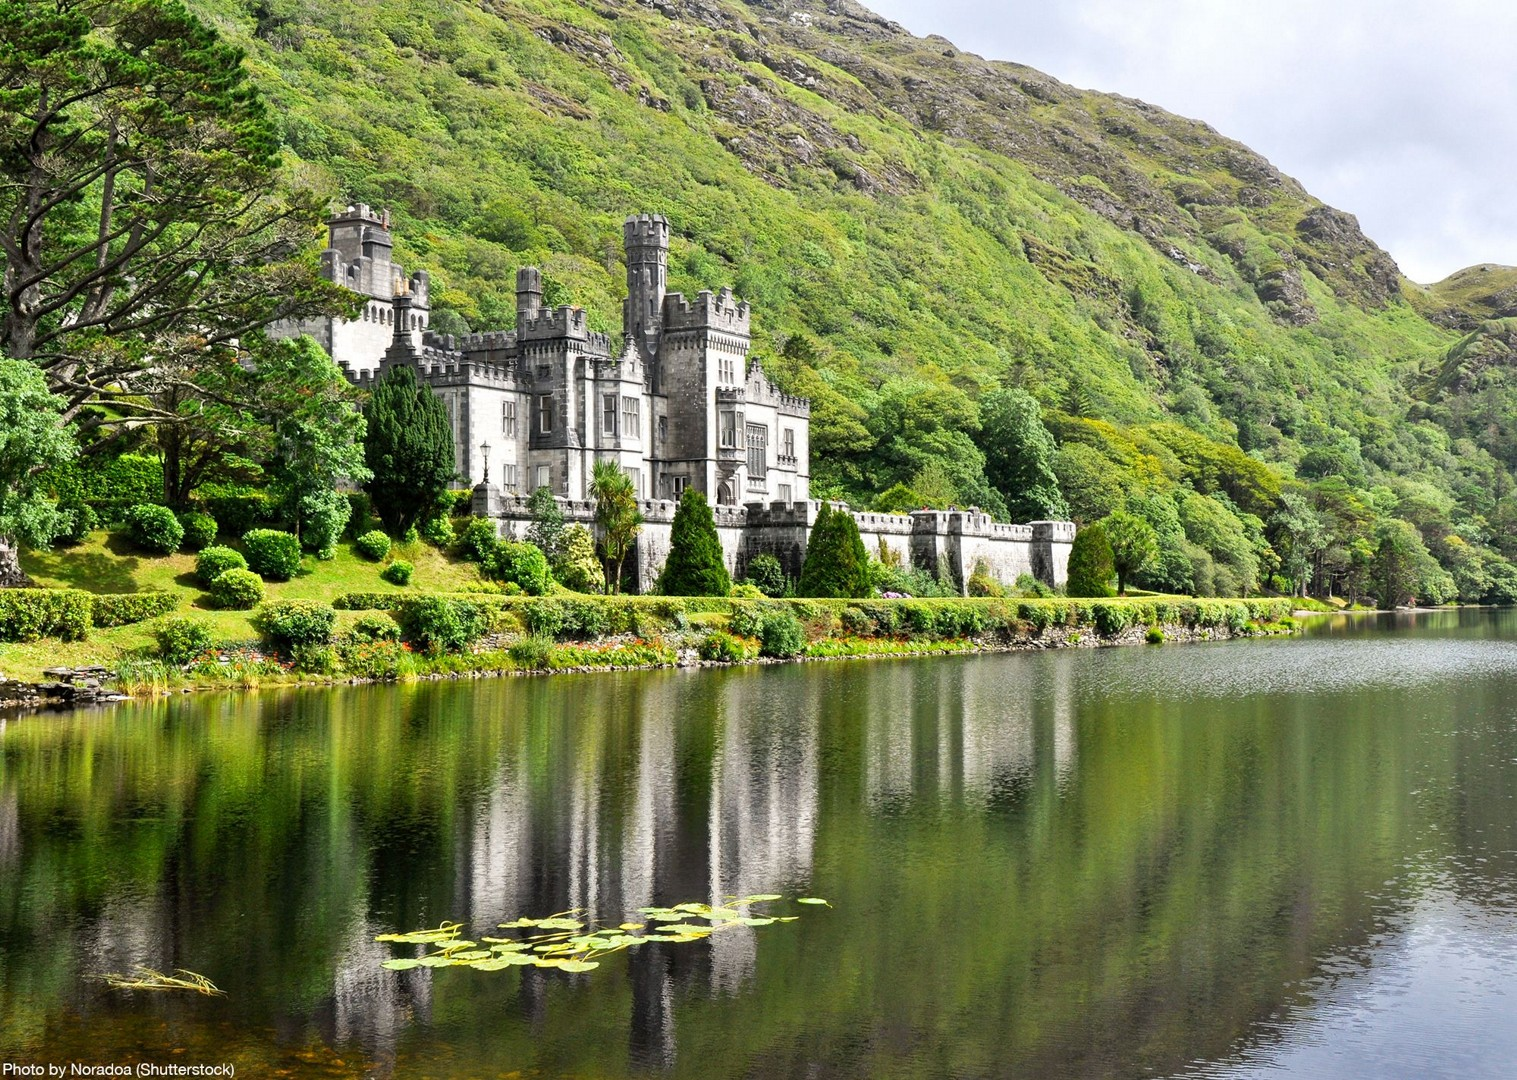 kylemore-abbey-ireland-saddle-skedaddle-leisure-cycling-holiday.jpg - NEW! Ireland - Connemara and the Aran Isles - Leisure Cycling